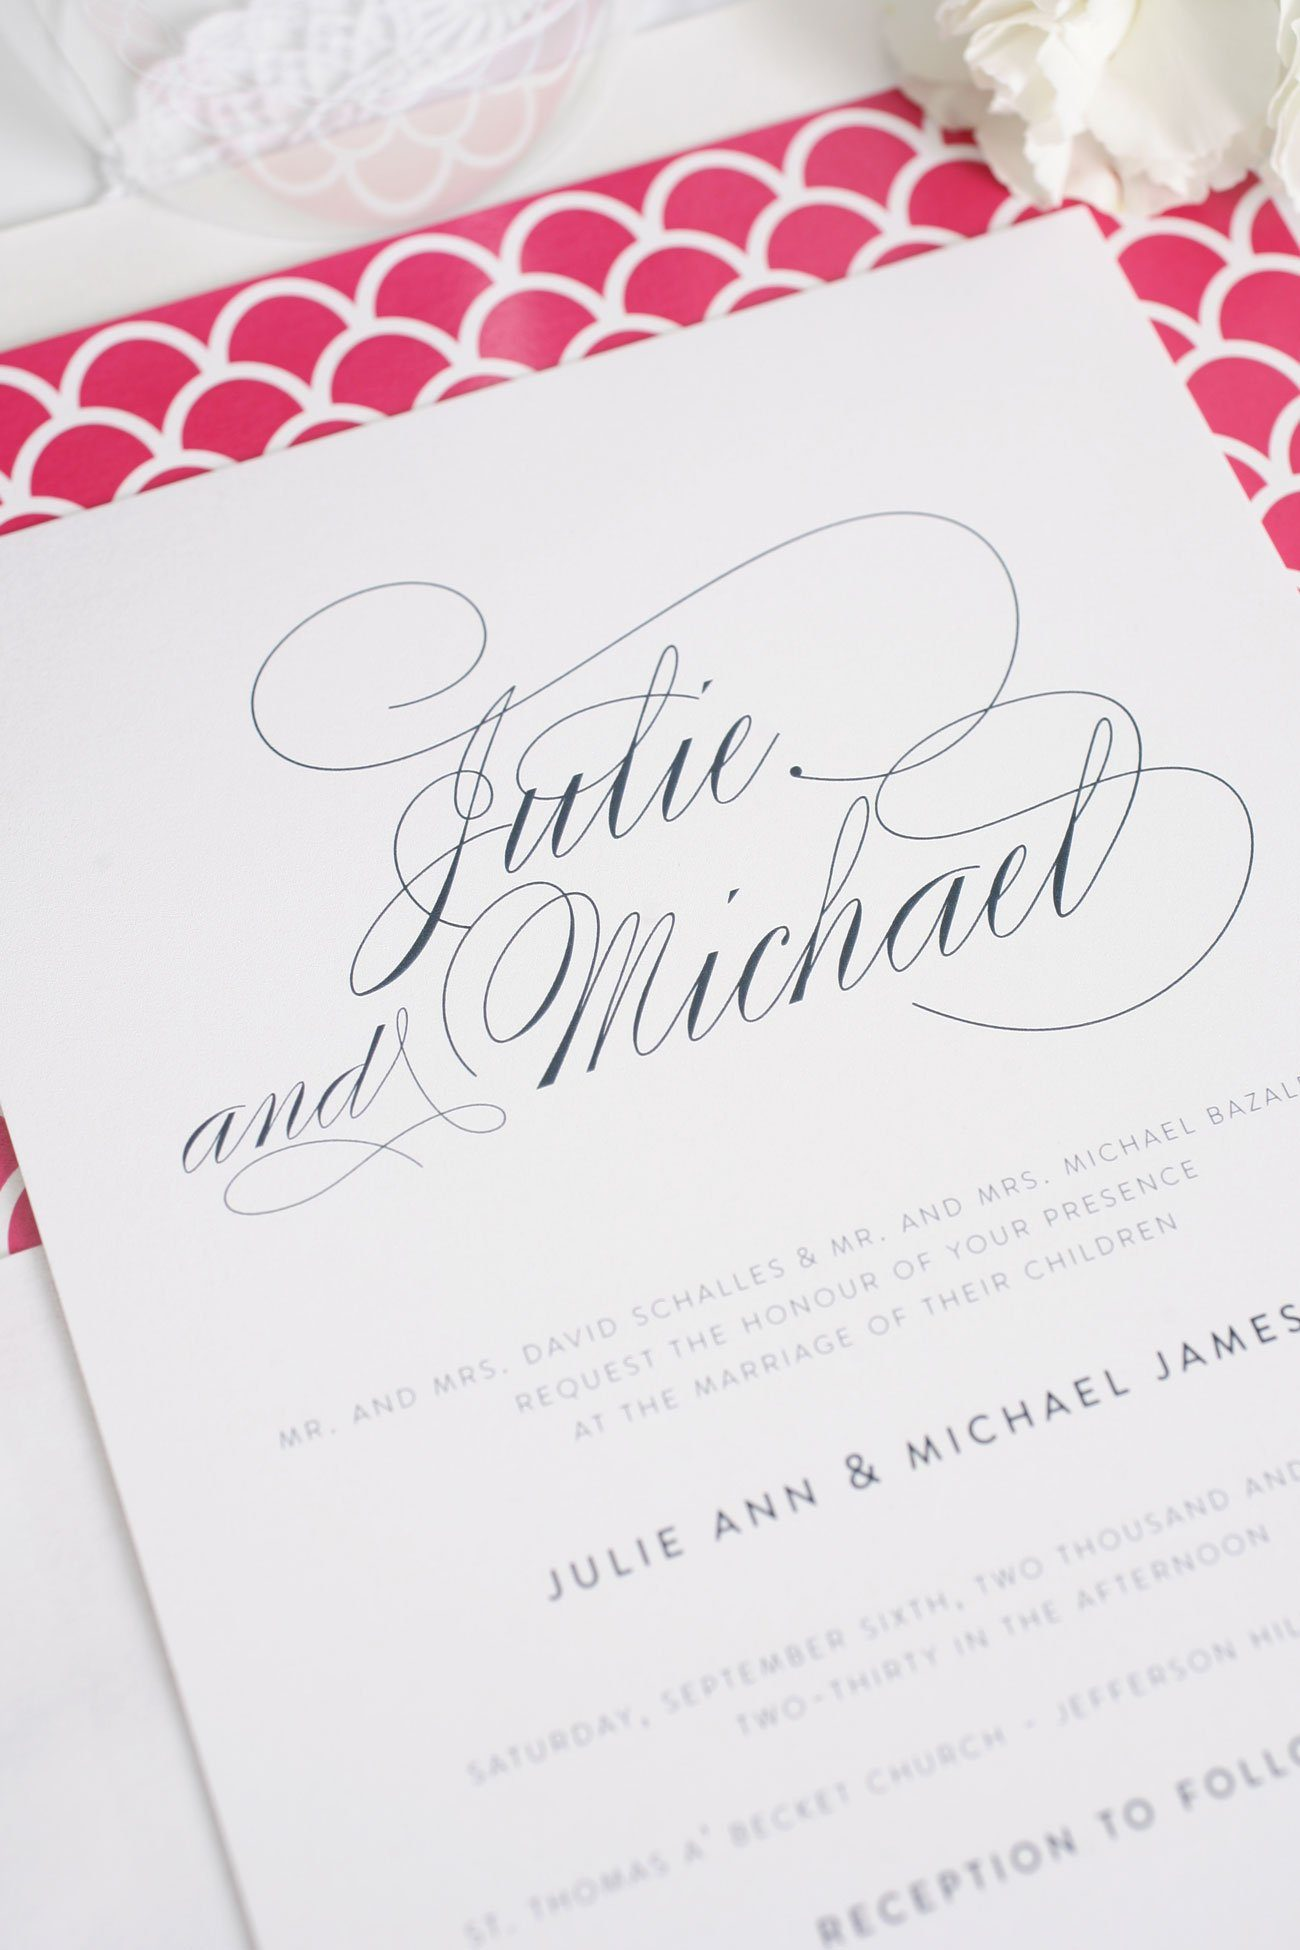 Hot pink and navy wedding invitations